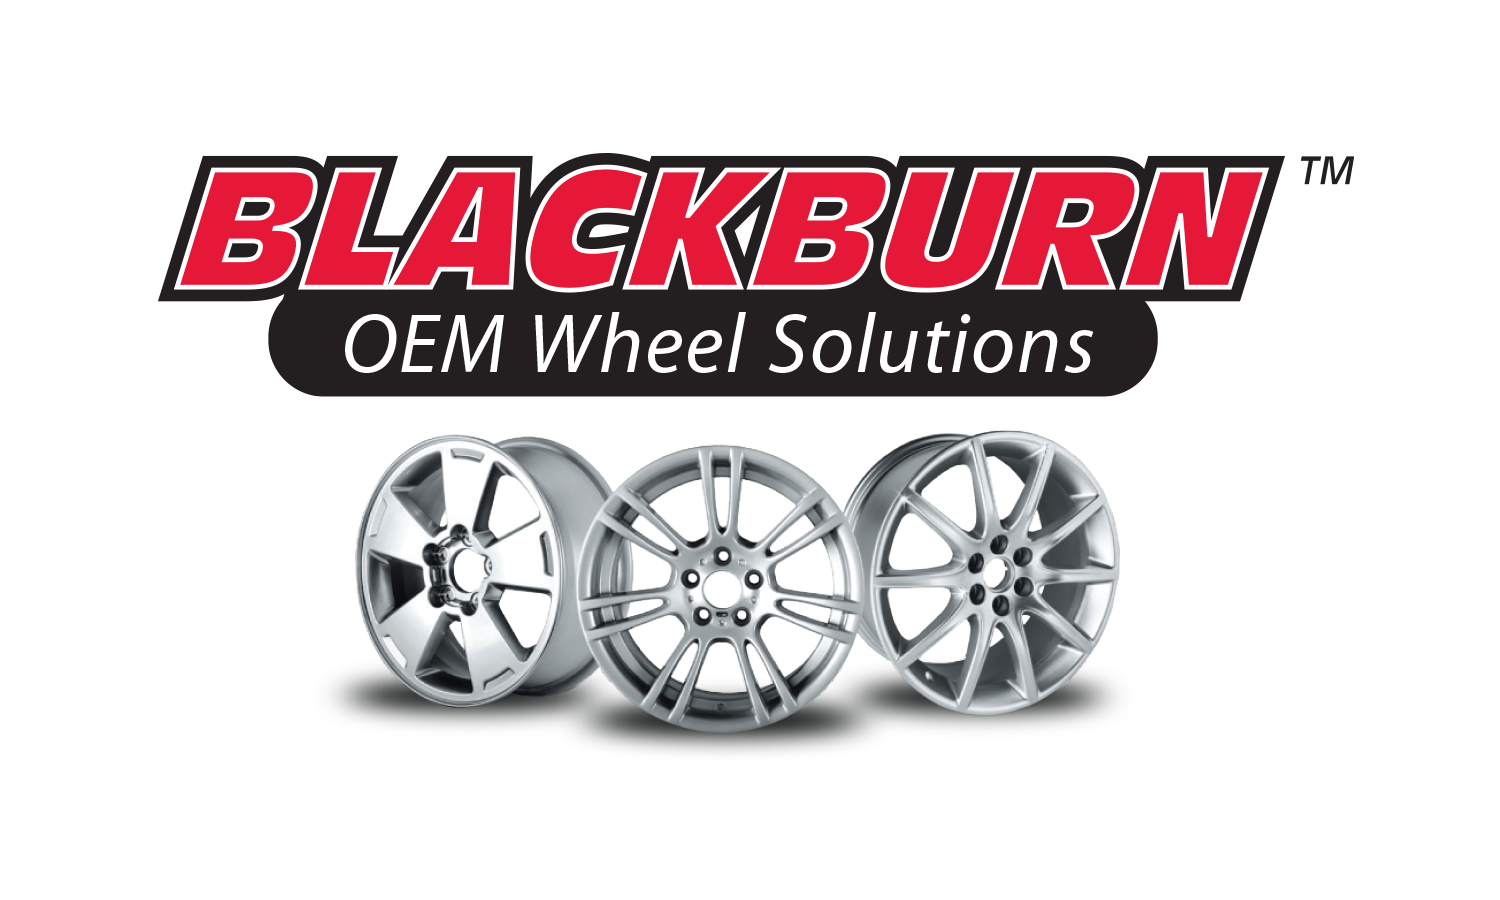 Blackburn OEM Wheel Solutions